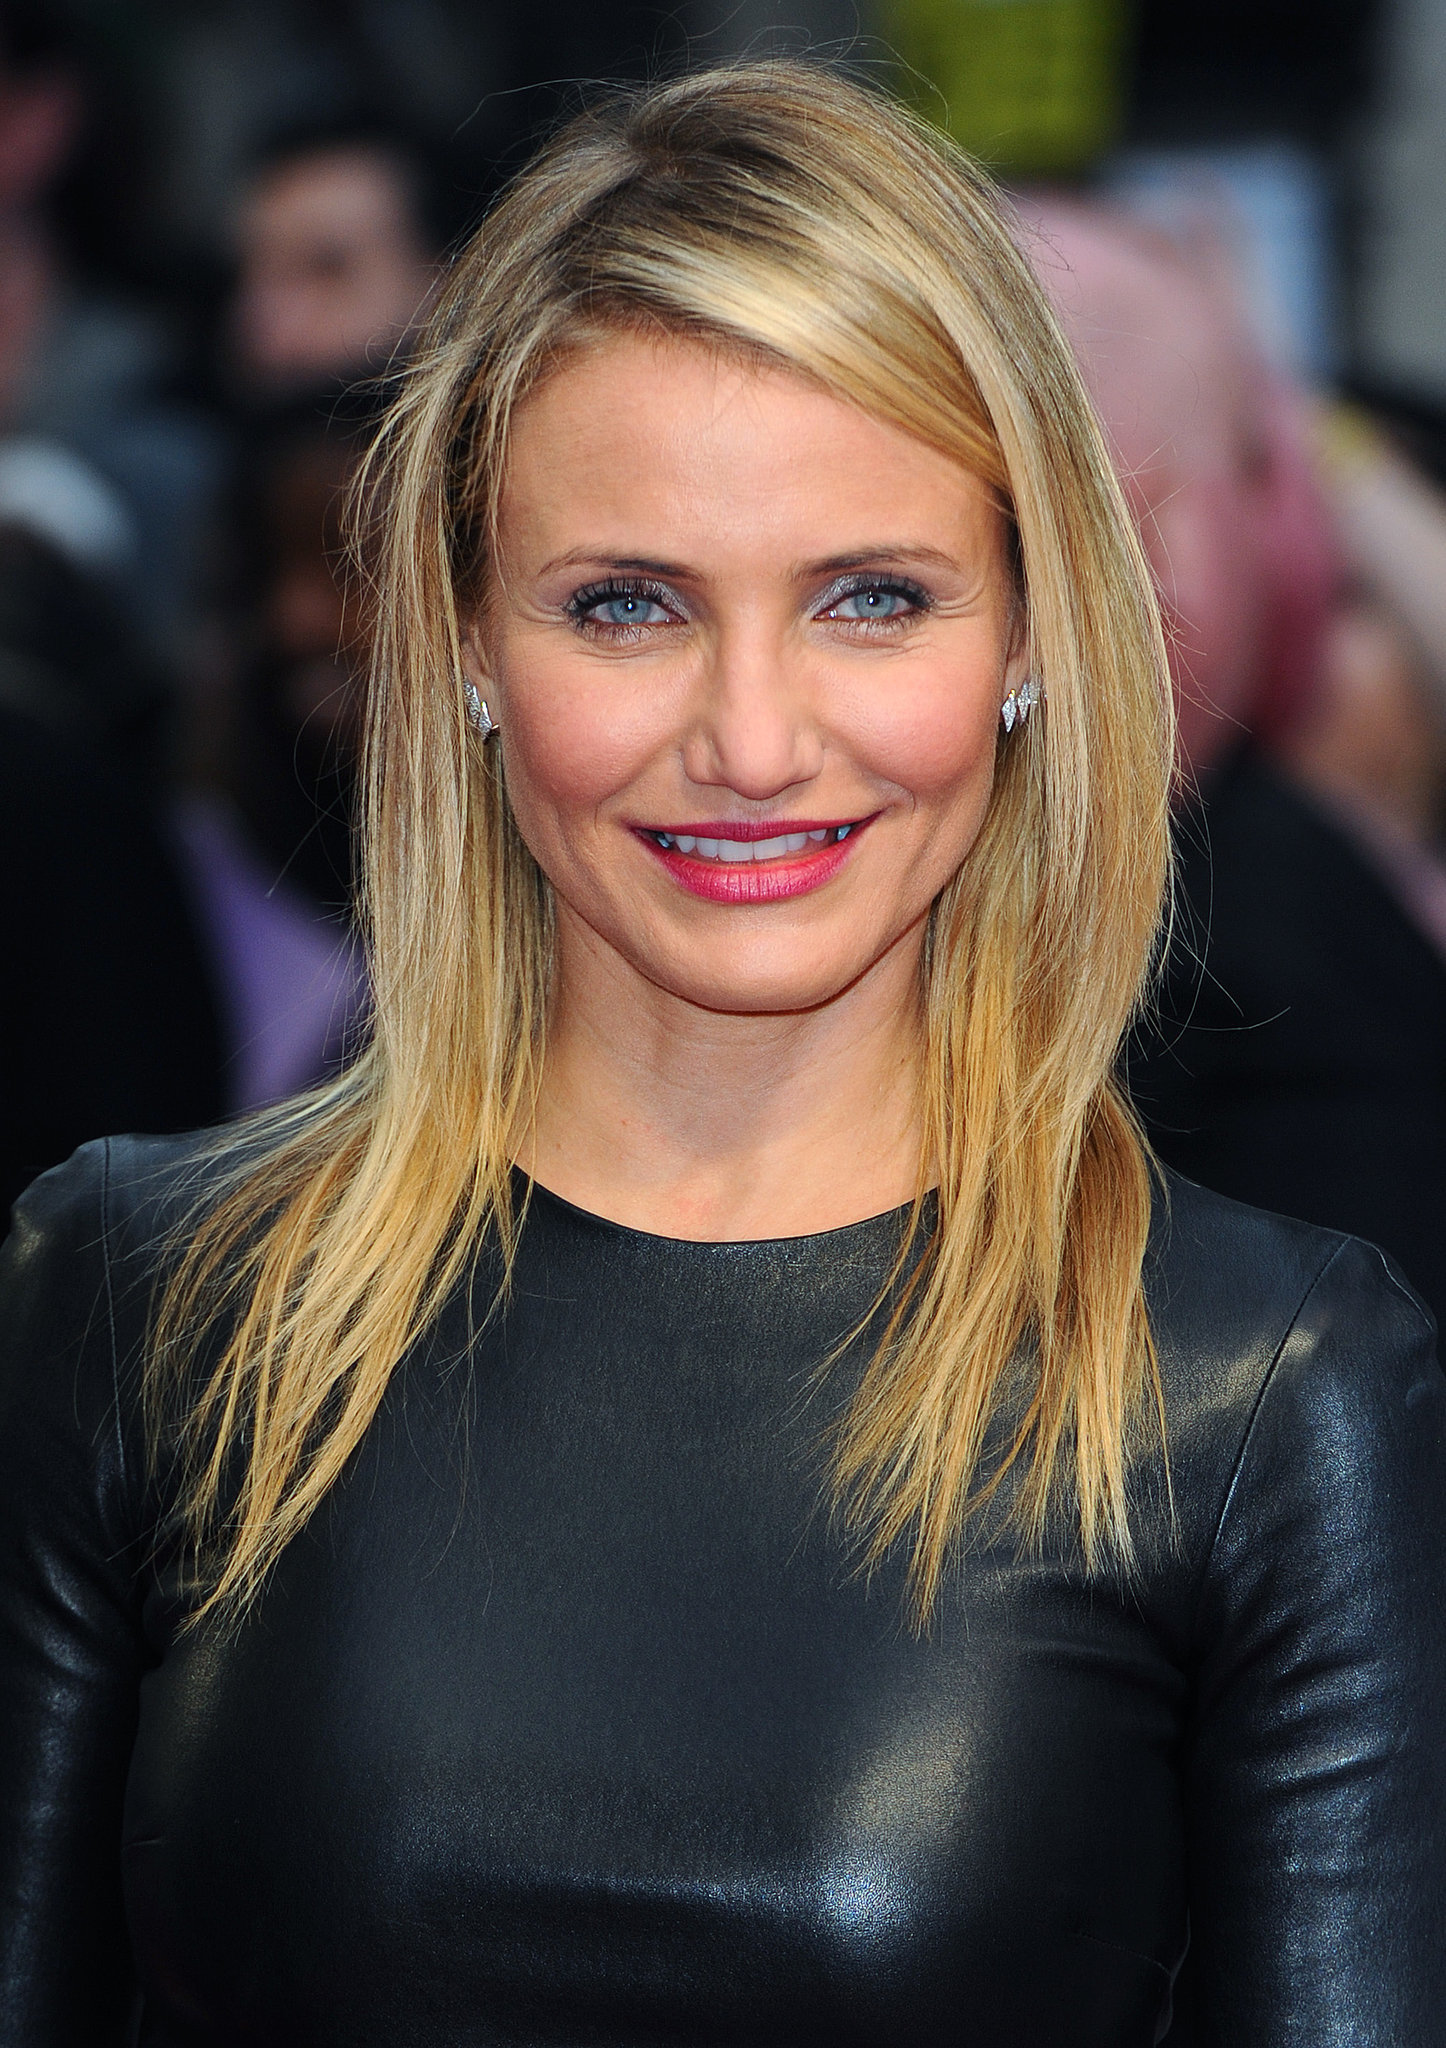 Cameron Diaz Measurements Height and Weight Cameron Diaz